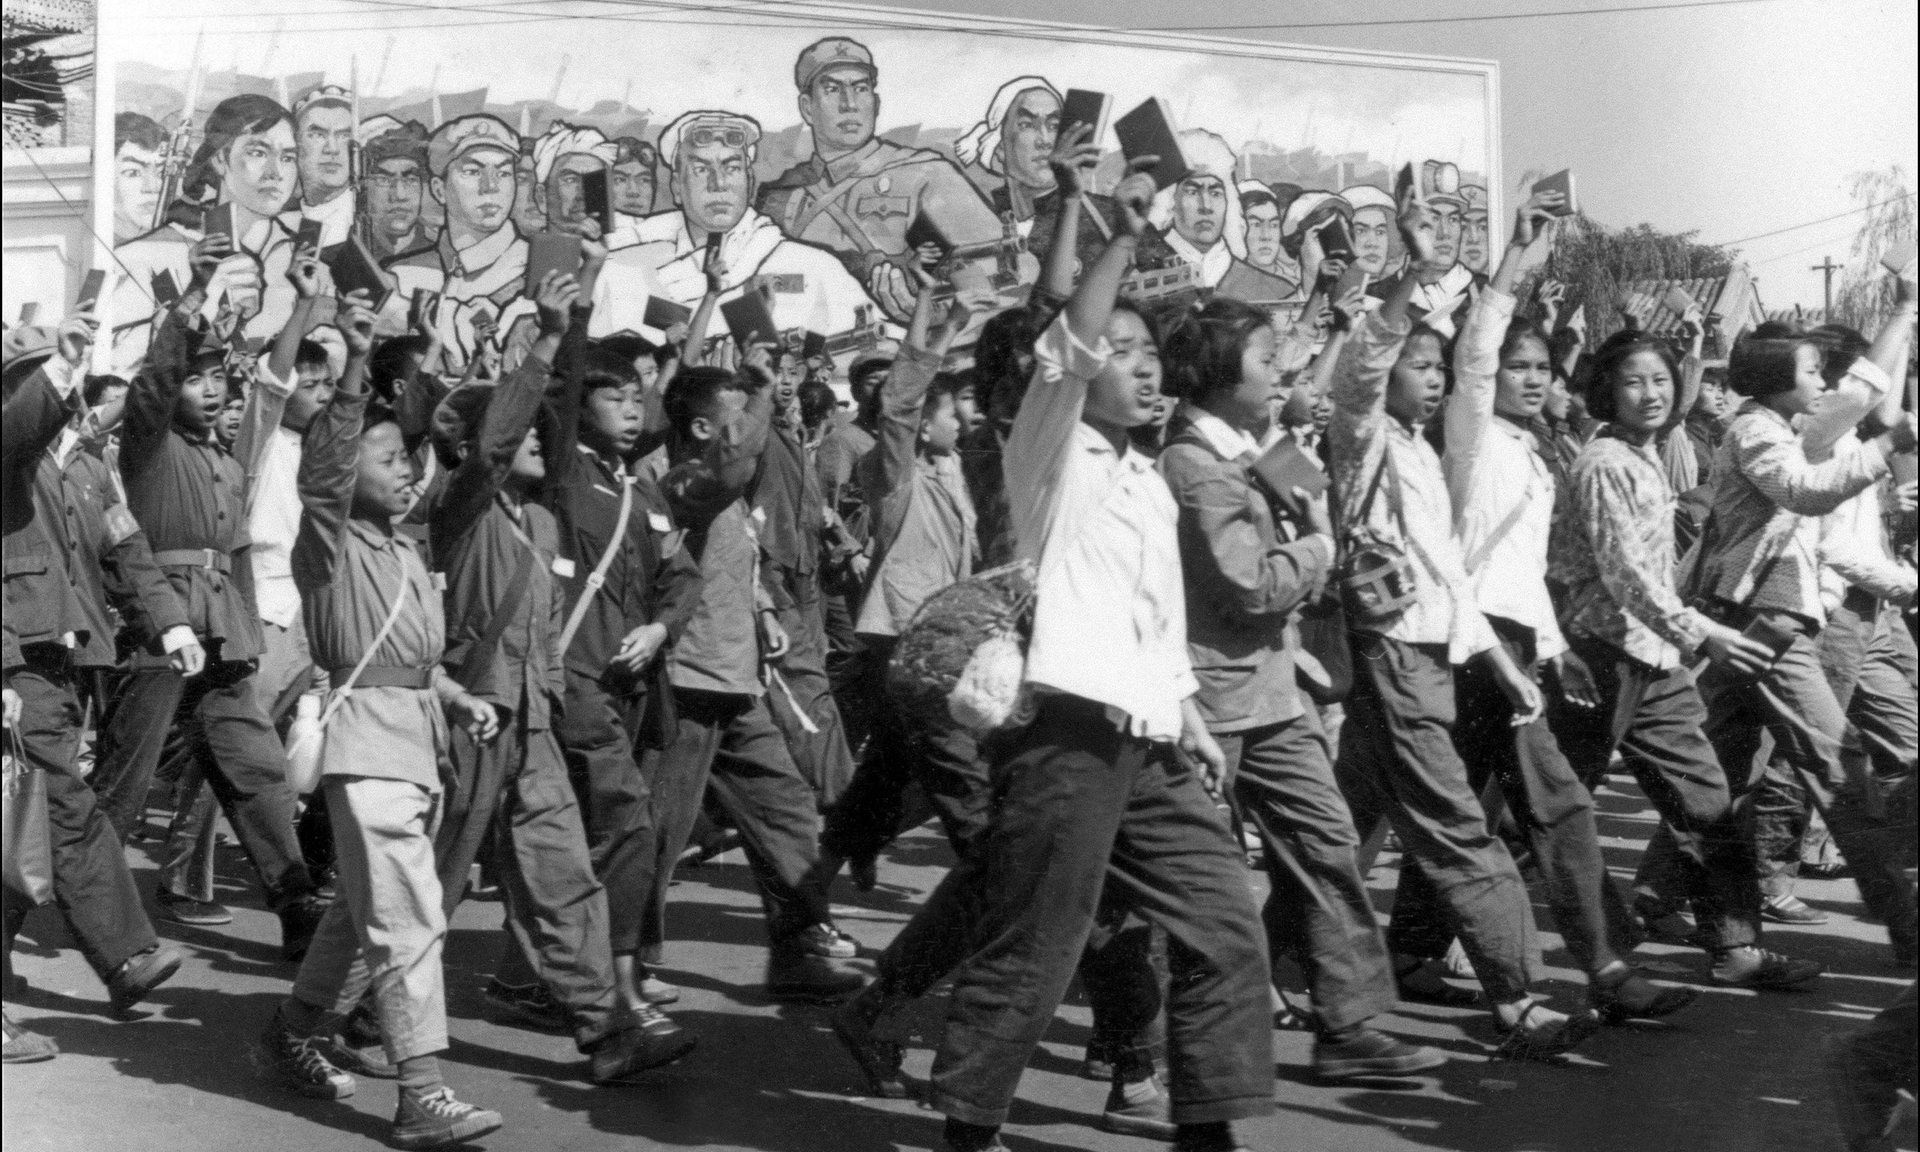 History: Periods of Time: Parade of people who joined the Red Guards. The Red Guards were a group of young people who were formed by the first leader of the People's Republic of China, Mao Zedong. They purged the people in China deemed untrustworthy, leading to a chaotic period known as the Cultural Revolution.